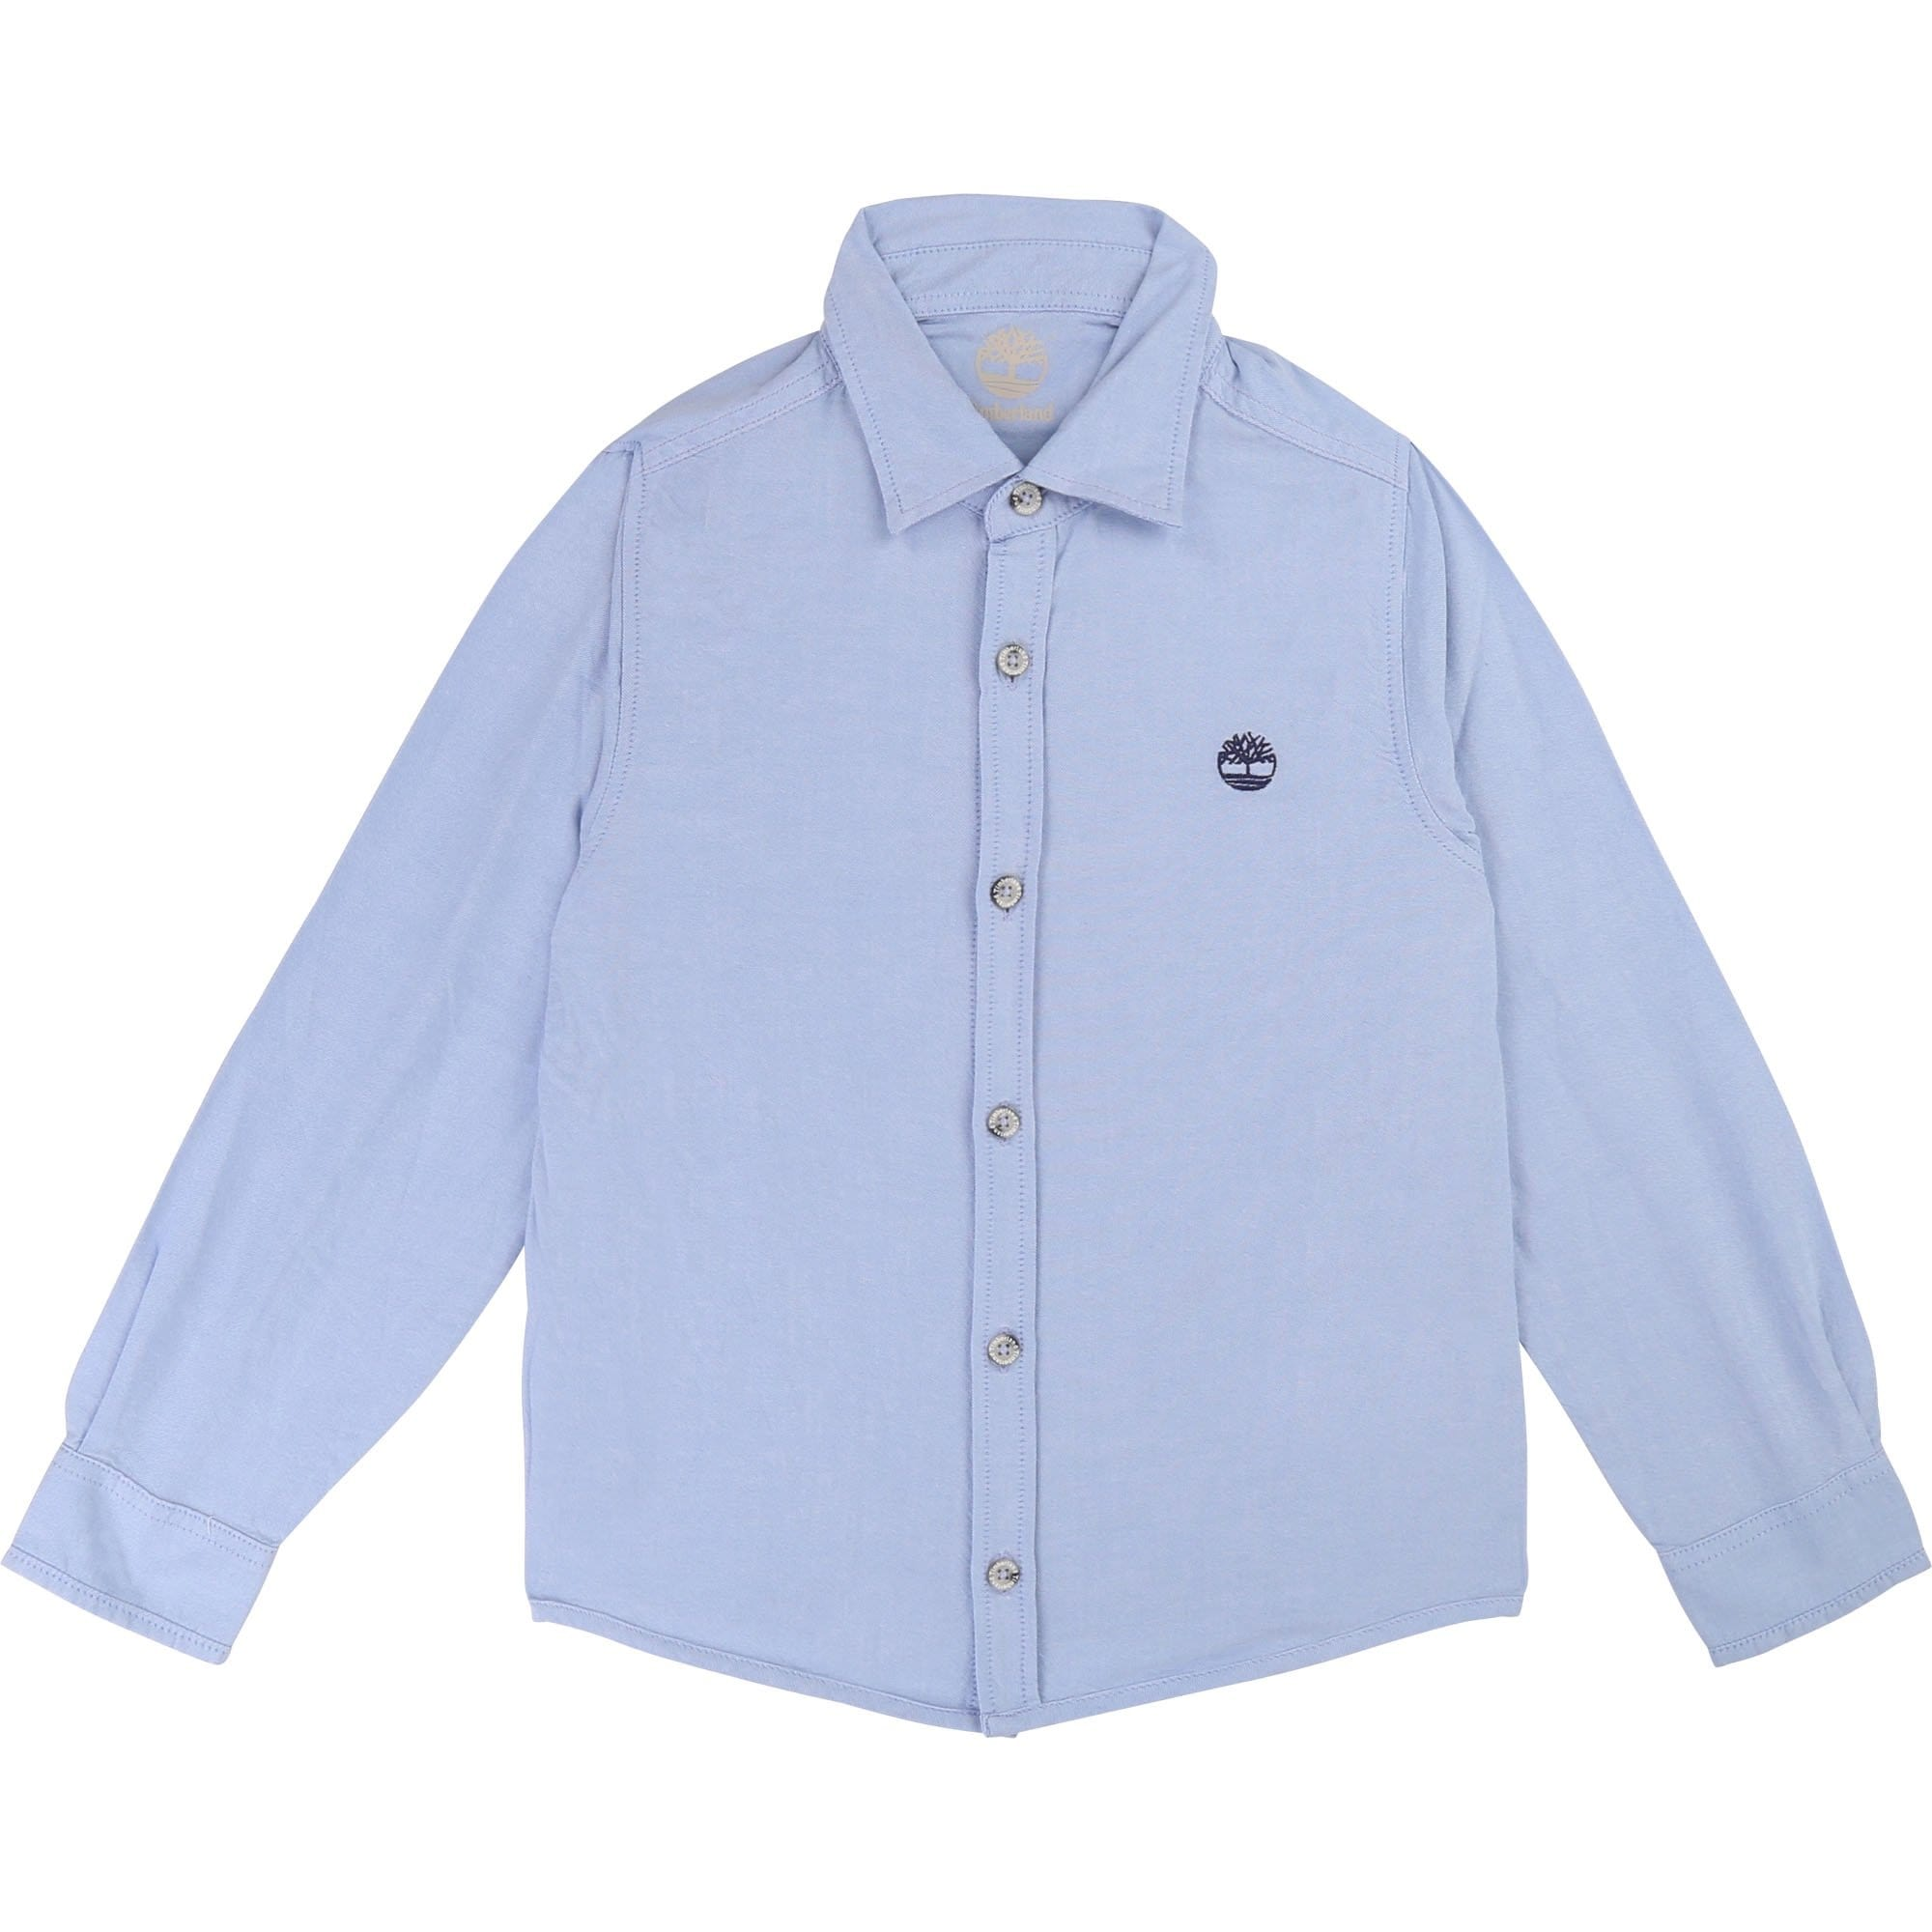 Timberland Long Sleeve Shirt (4717217841283)